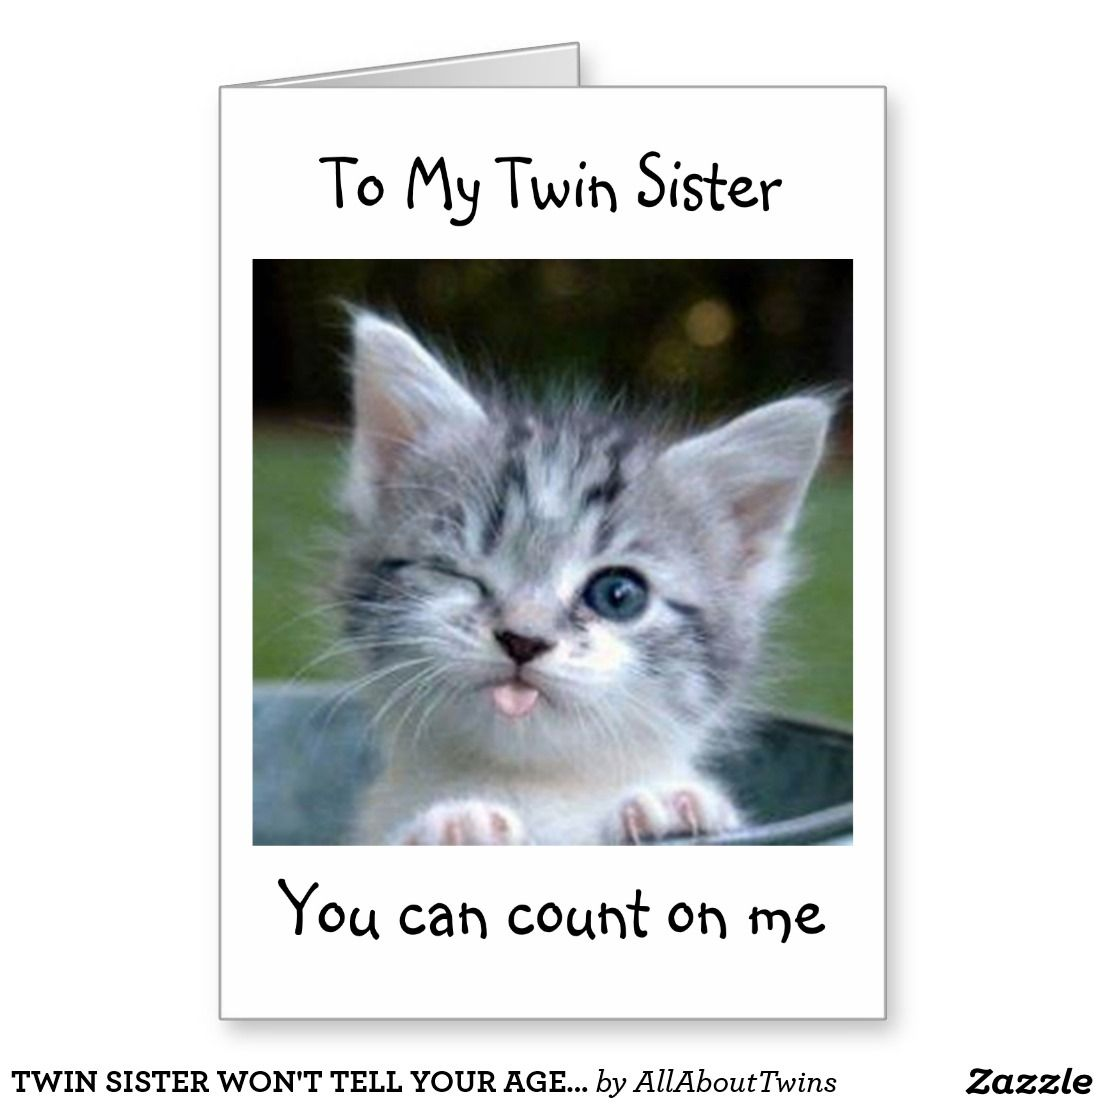 Twin sister wont tell your age happy birthday card is just one of twin sister wont tell your age happy birthday card is just one of the many twins cards in my store called allabouttwins and i hope you know you can kristyandbryce Gallery